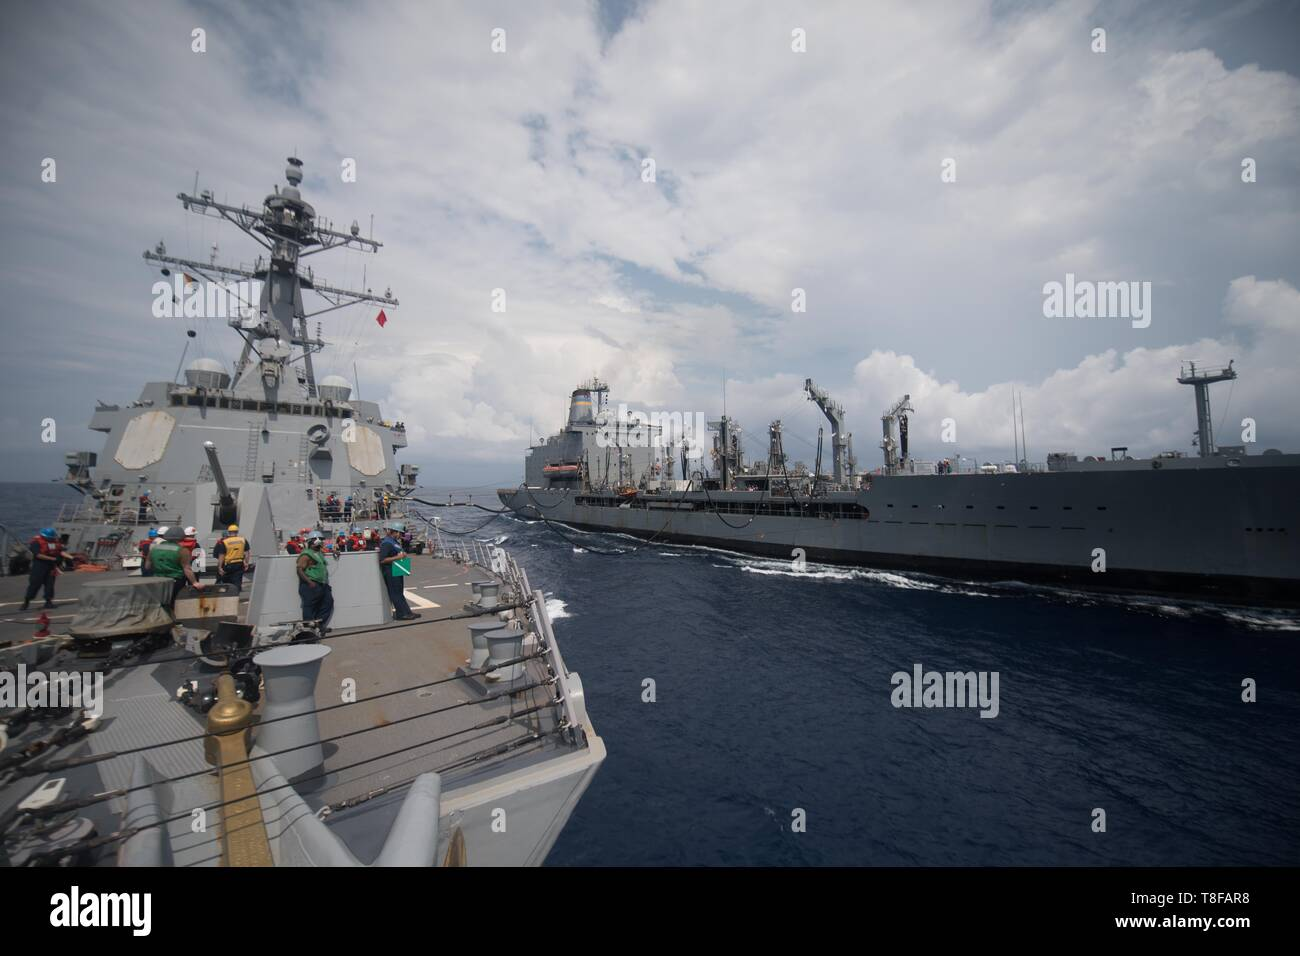 190509-N-OW019-1103 SOUTH CHINA SEA (May 9, 2019) Sailors aboard the guided-missile destroyer USS Chung-Hoon (DDG 93) conduct a replenishment-at-sea with the fleet replenishment oiler USNS Guadalupe (T-AO 200). Chung-Hoon is deployed to the U.S. 7th Fleet area of operations in support of security and stability in the Indo-Pacific region. (U.S. Navy photo by Mass Communication Specialist 2nd Class Logan C. Kellums) - Stock Image